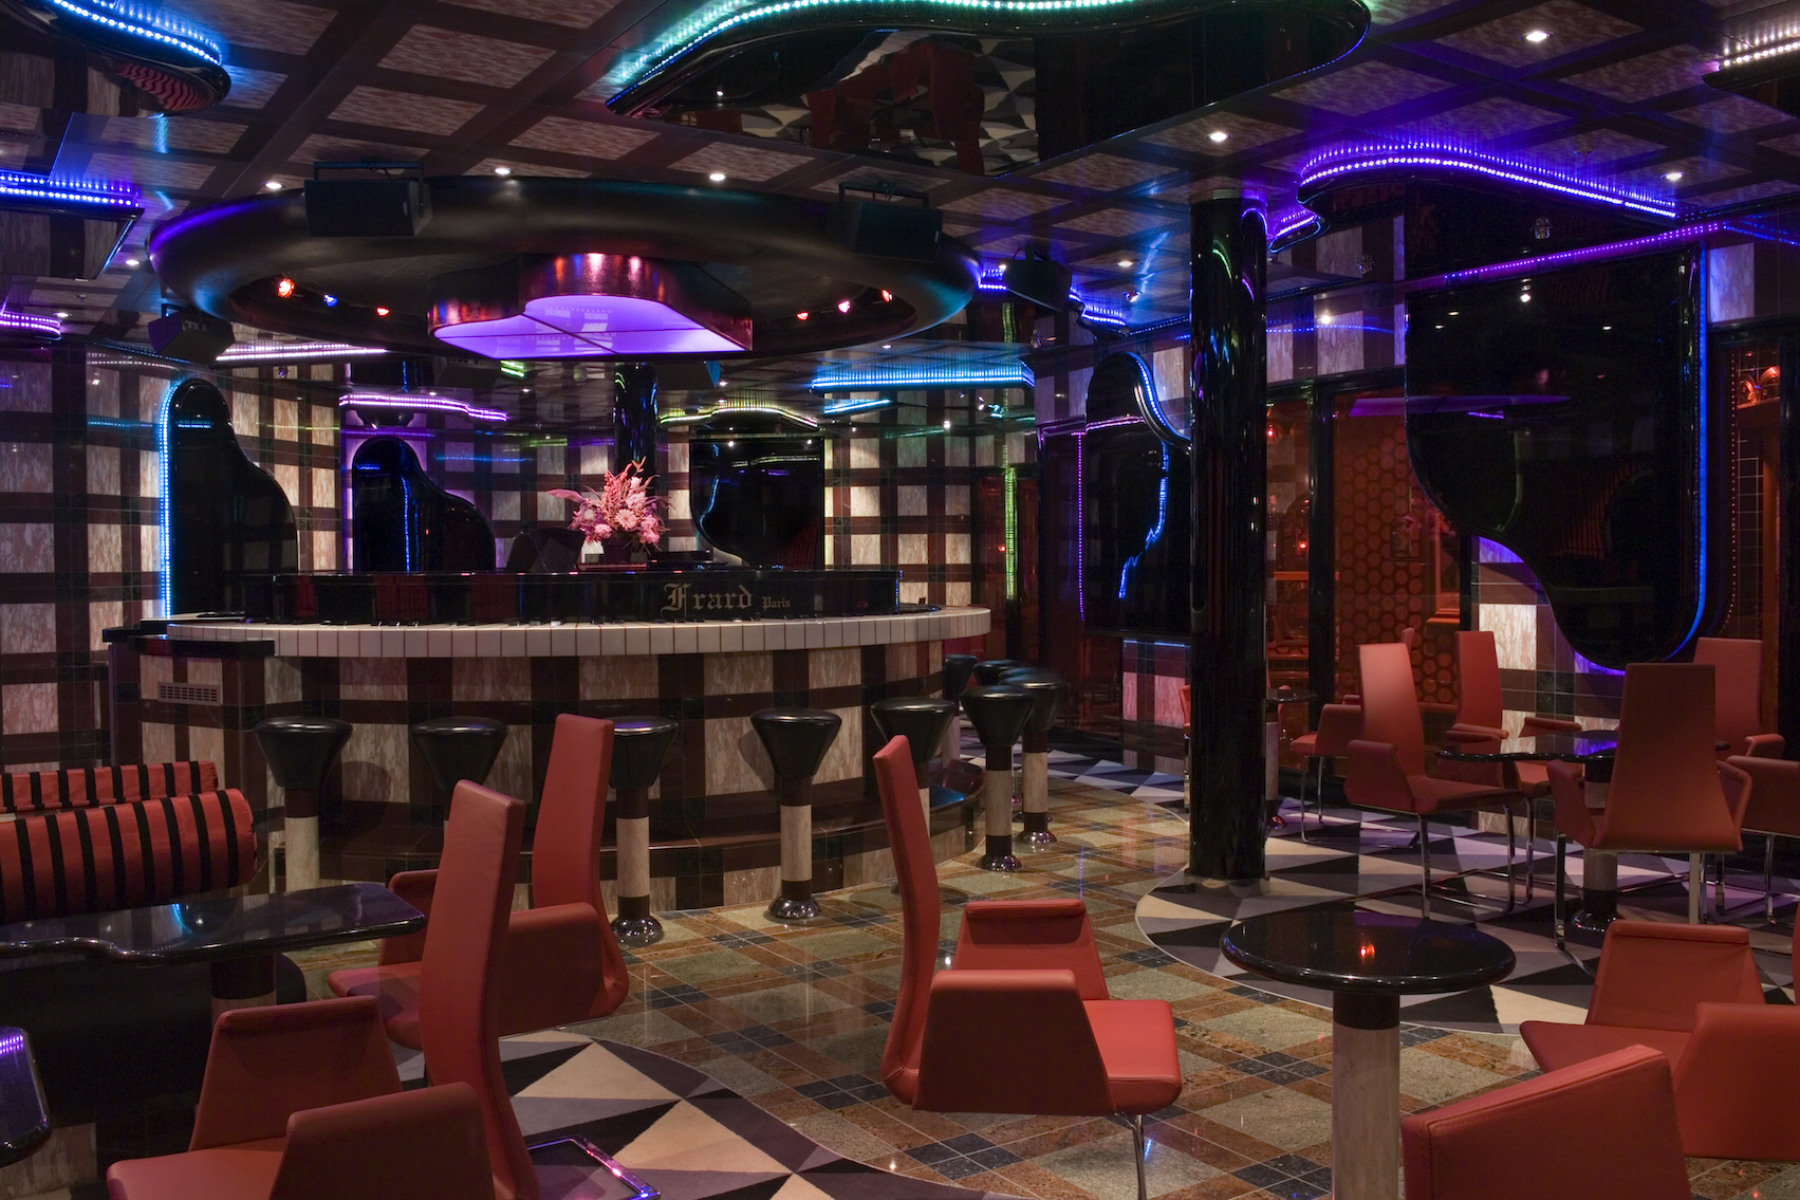 Carnival Splendor Grand Piano Bar 1.jpg